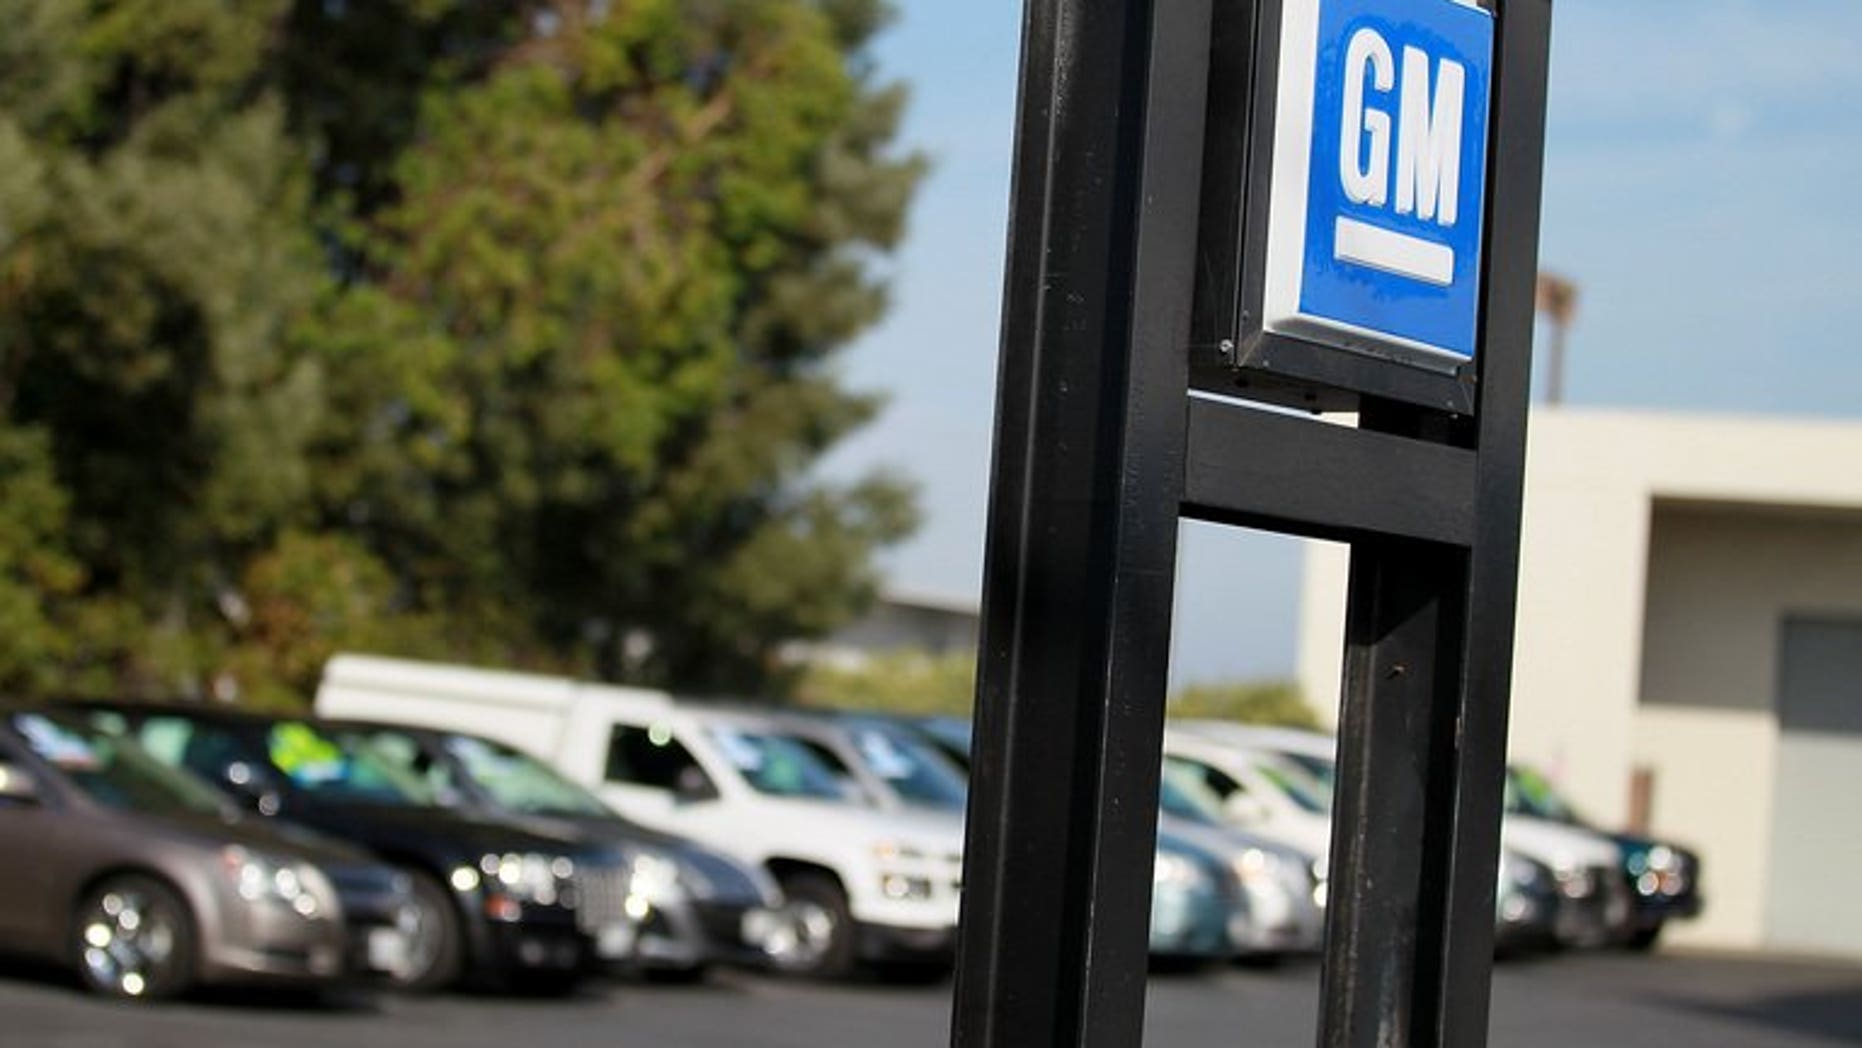 The Canadian government and Ontario province have sold off a large part of their share in General Motors, four years after joining a US bailout of the auto giant.